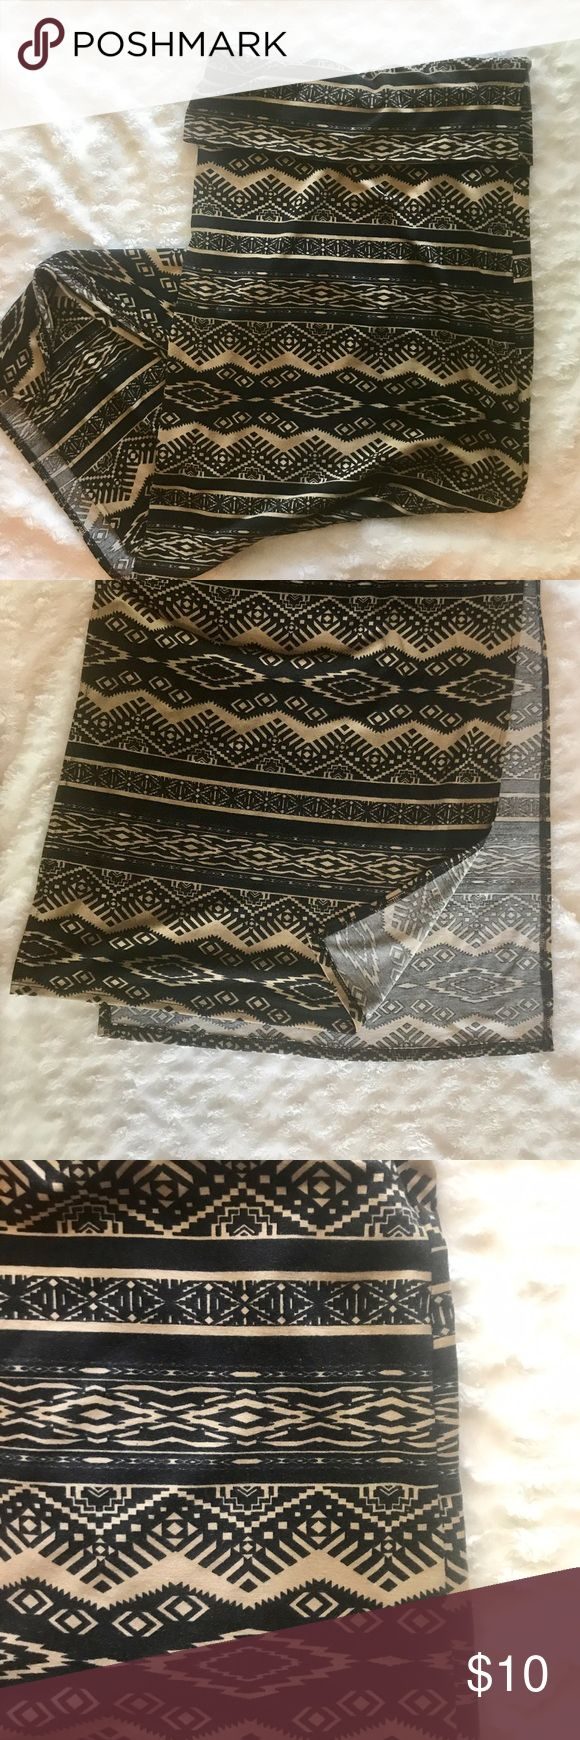 Tribal maxi skirt Black and nude tribal print maxi skirt with side slots. Stretchy and super comfy. Form fitting. In great condition. Stoosh Skirts Maxi